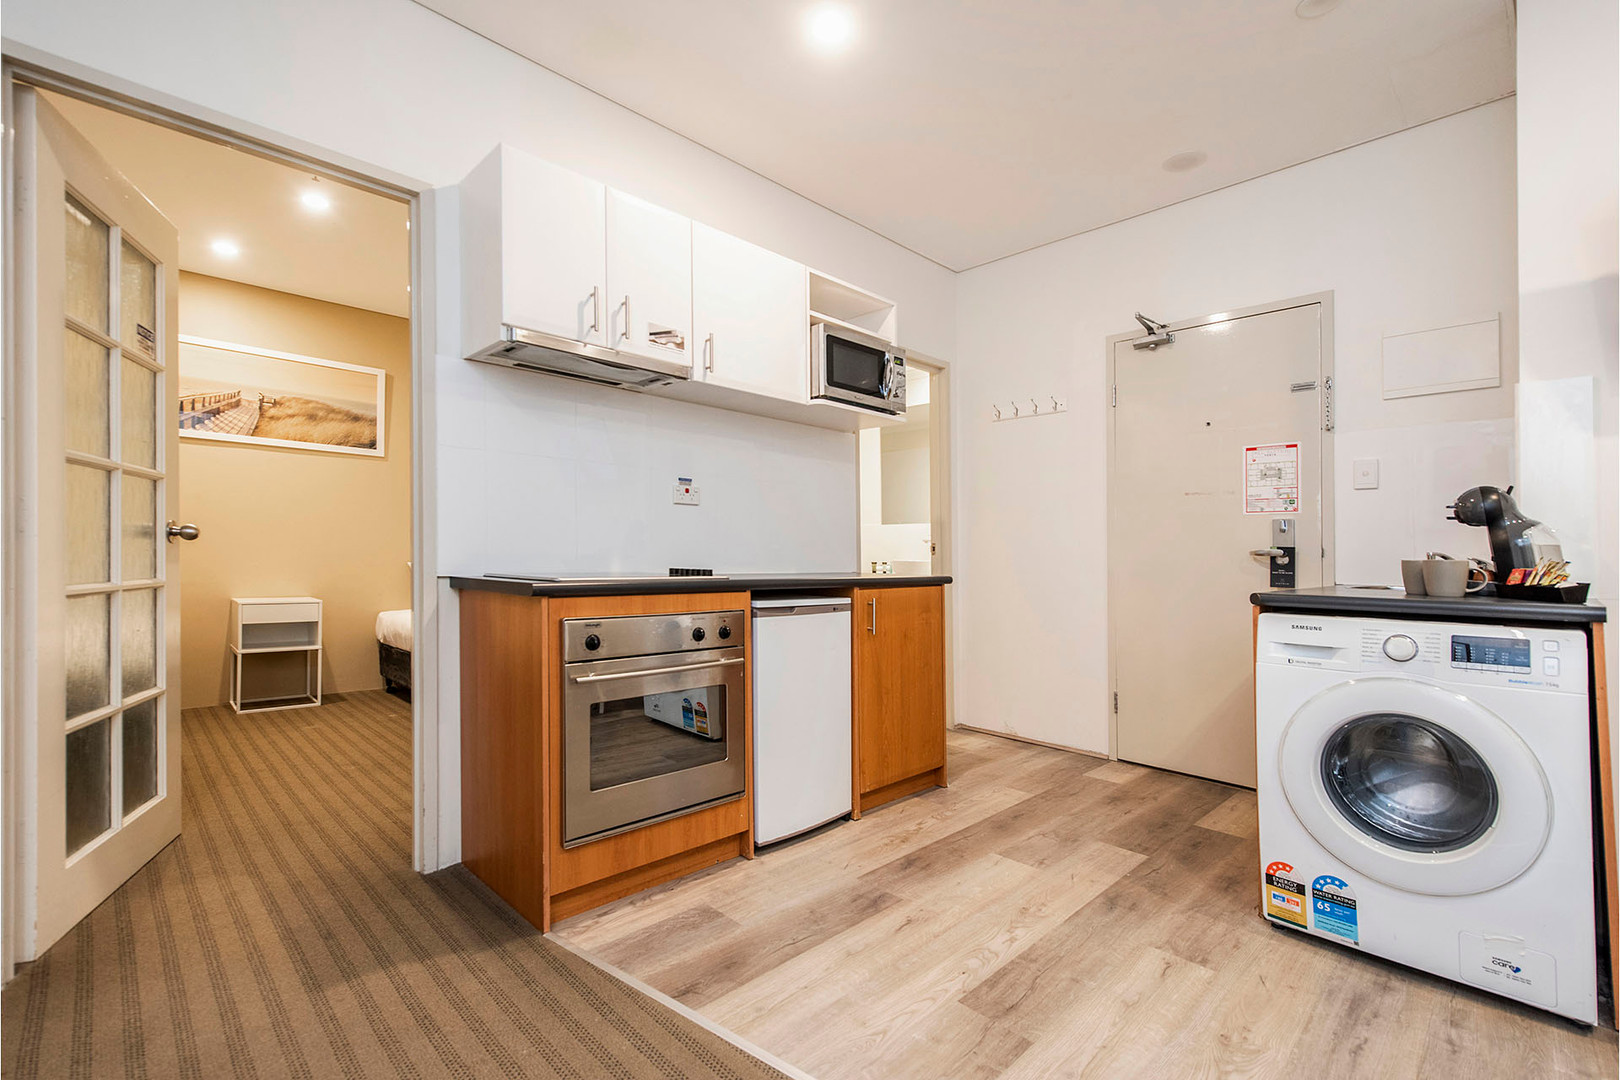 Kitchen - Short Term Rental Perth CBD